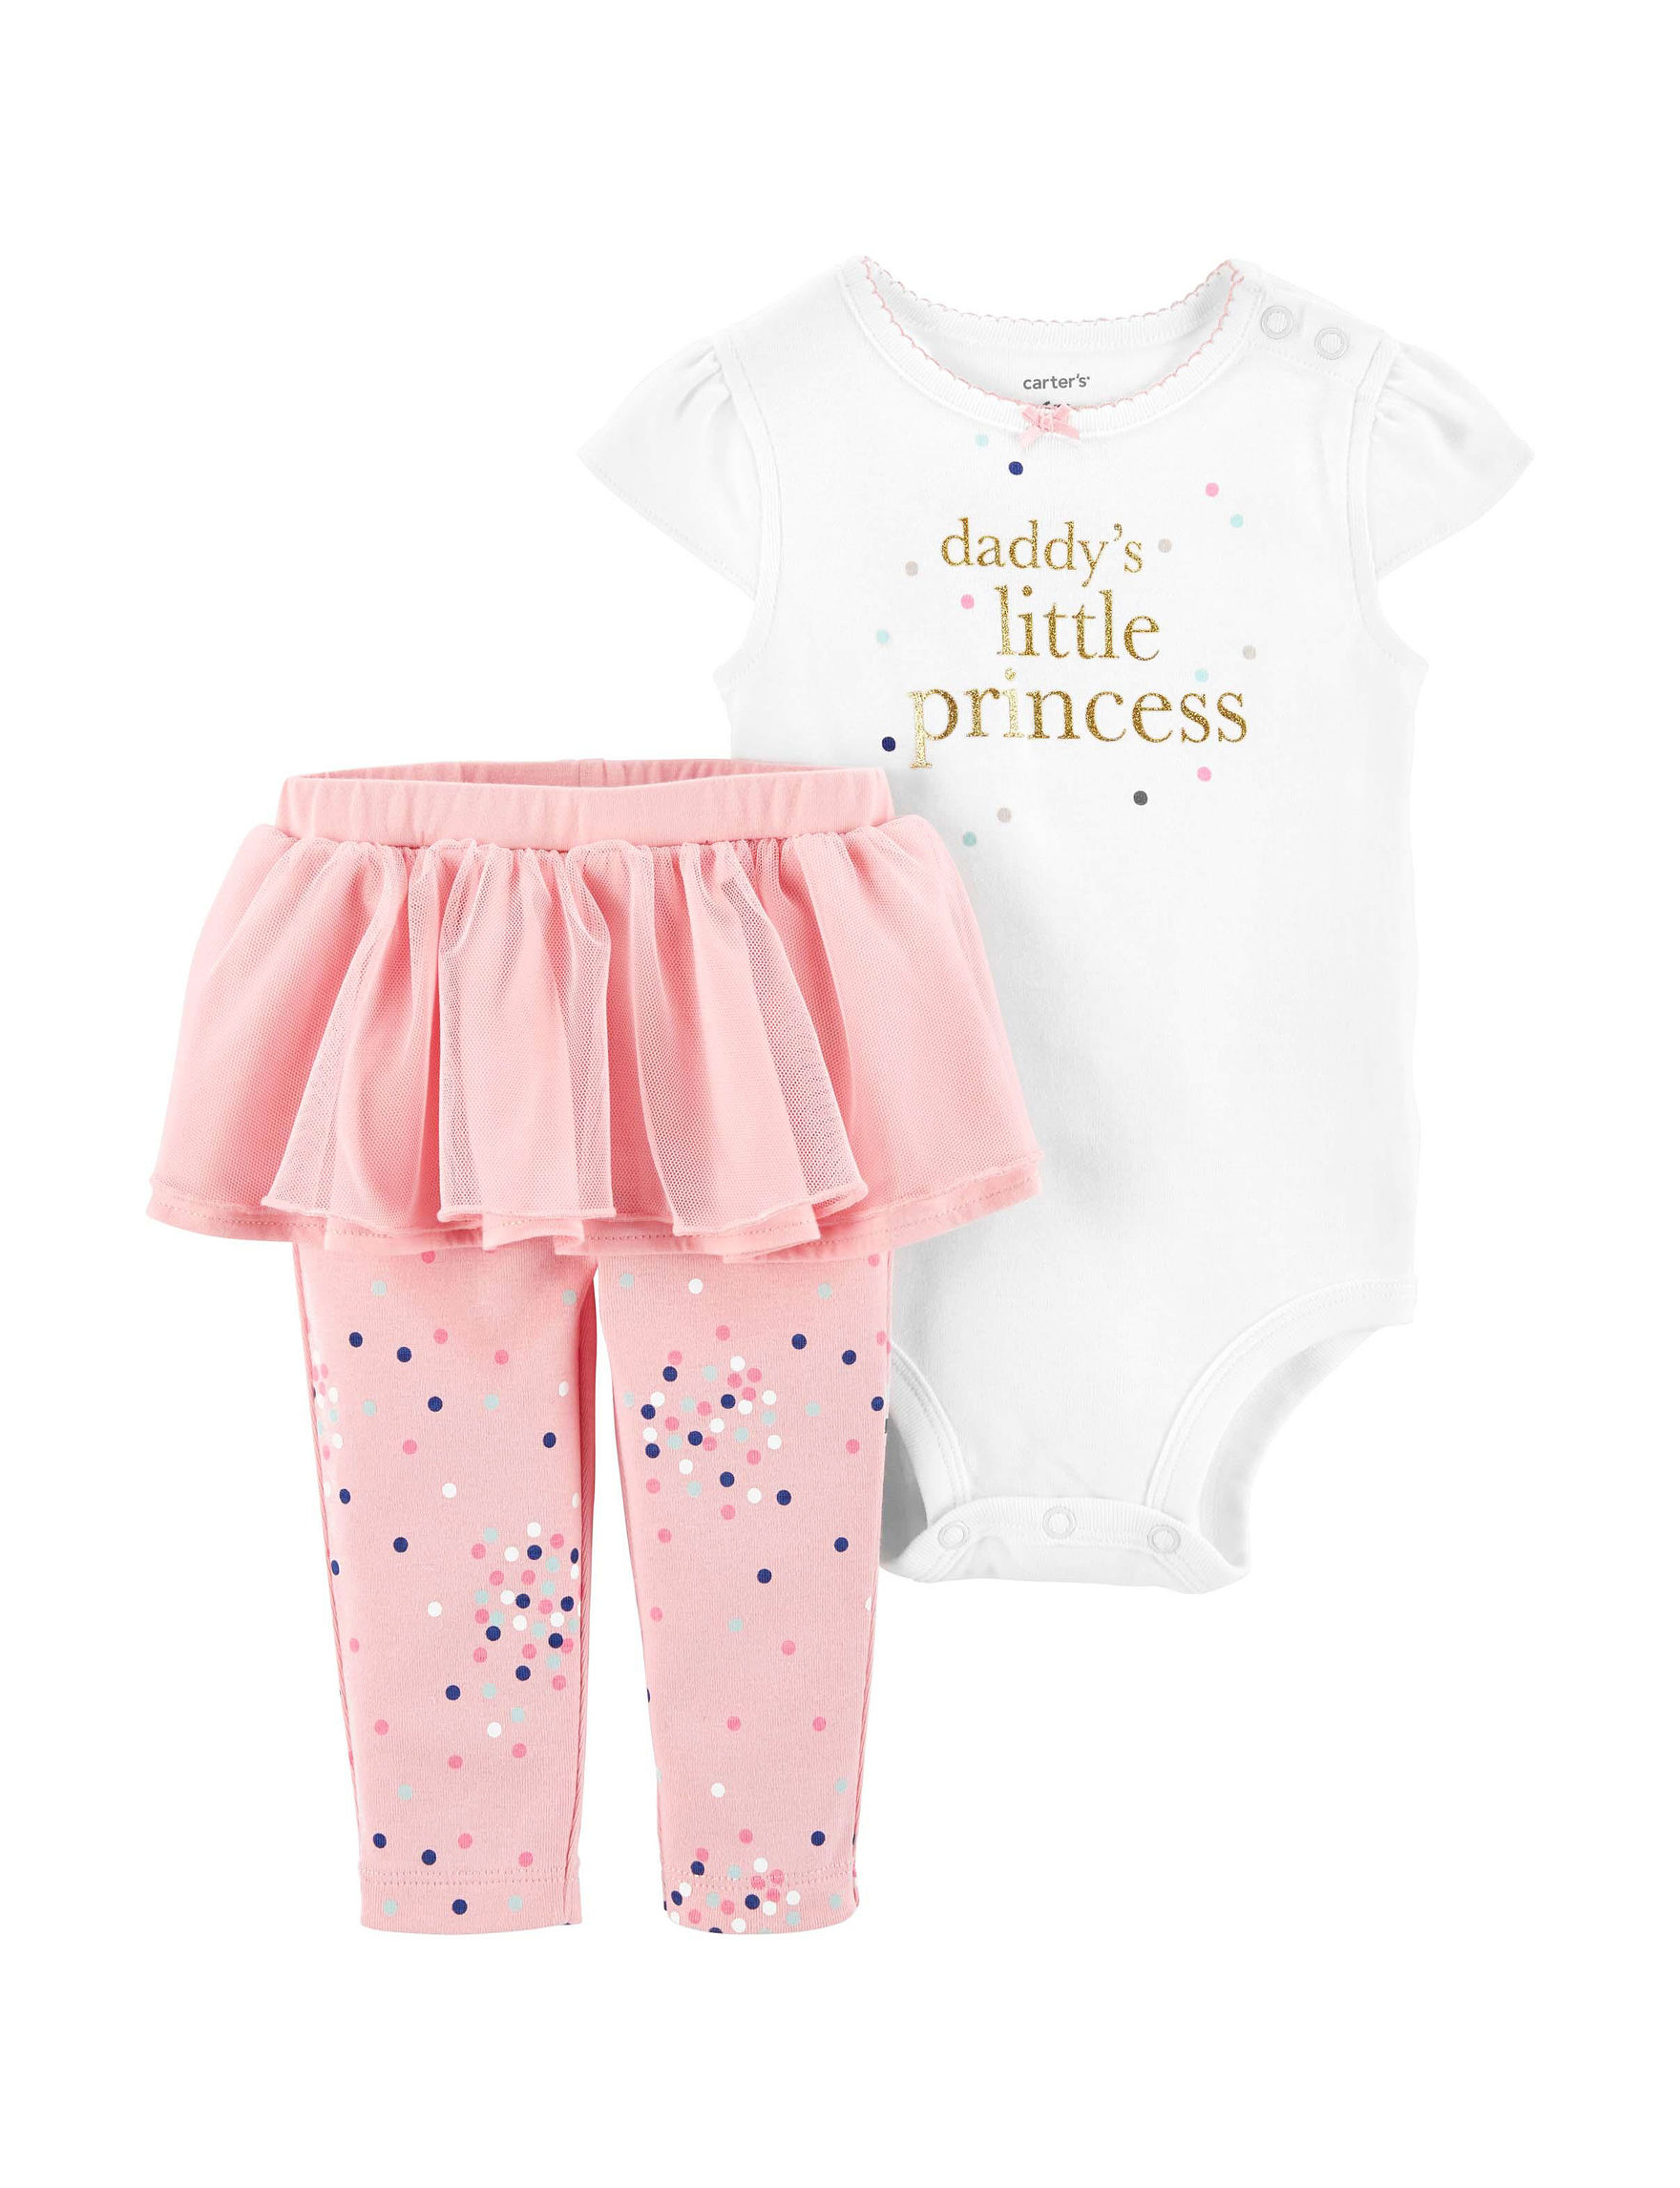 Carter's Ivory / Pink